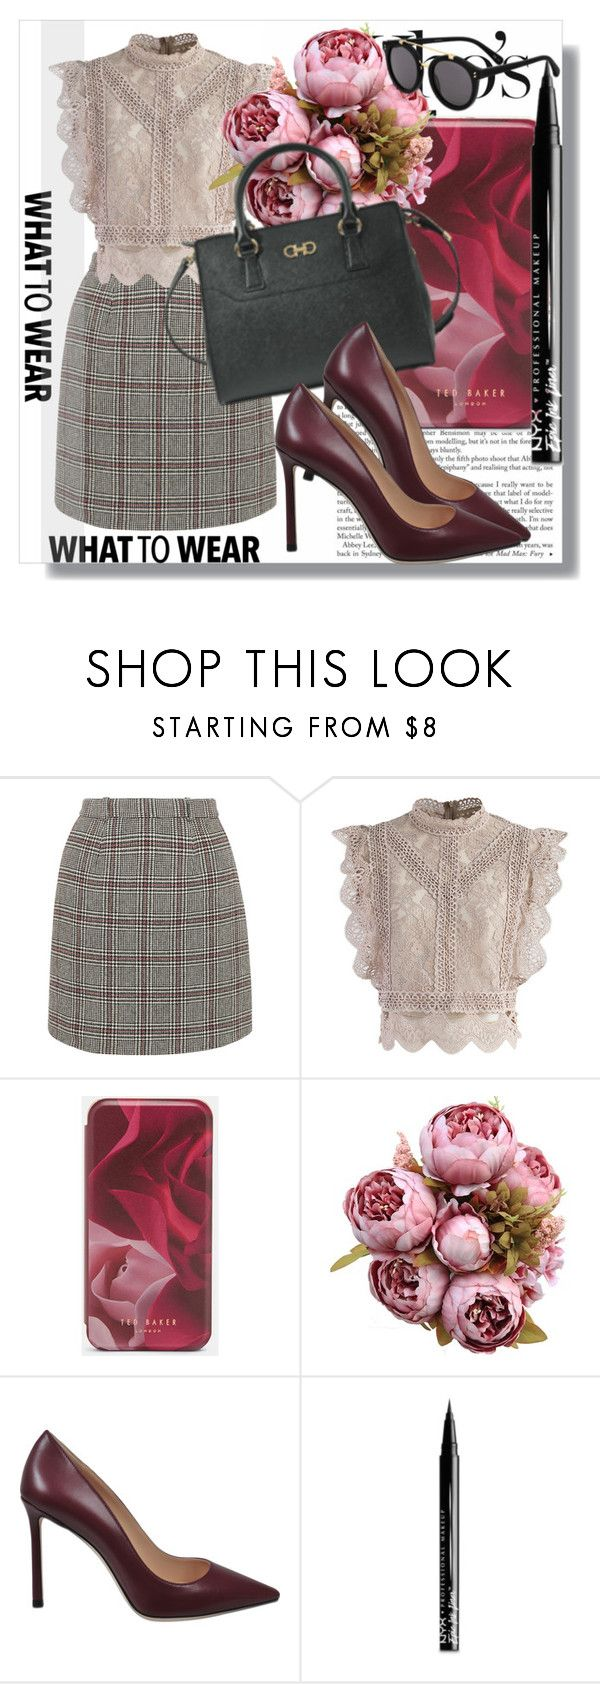 """""""Monnier Freres !!"""" by dianagrigoryan ❤ liked on Polyvore featuring Carven, Chicwish, Ted Baker, Jimmy Choo, NYX, STELLA McCARTNEY and girlsnight"""